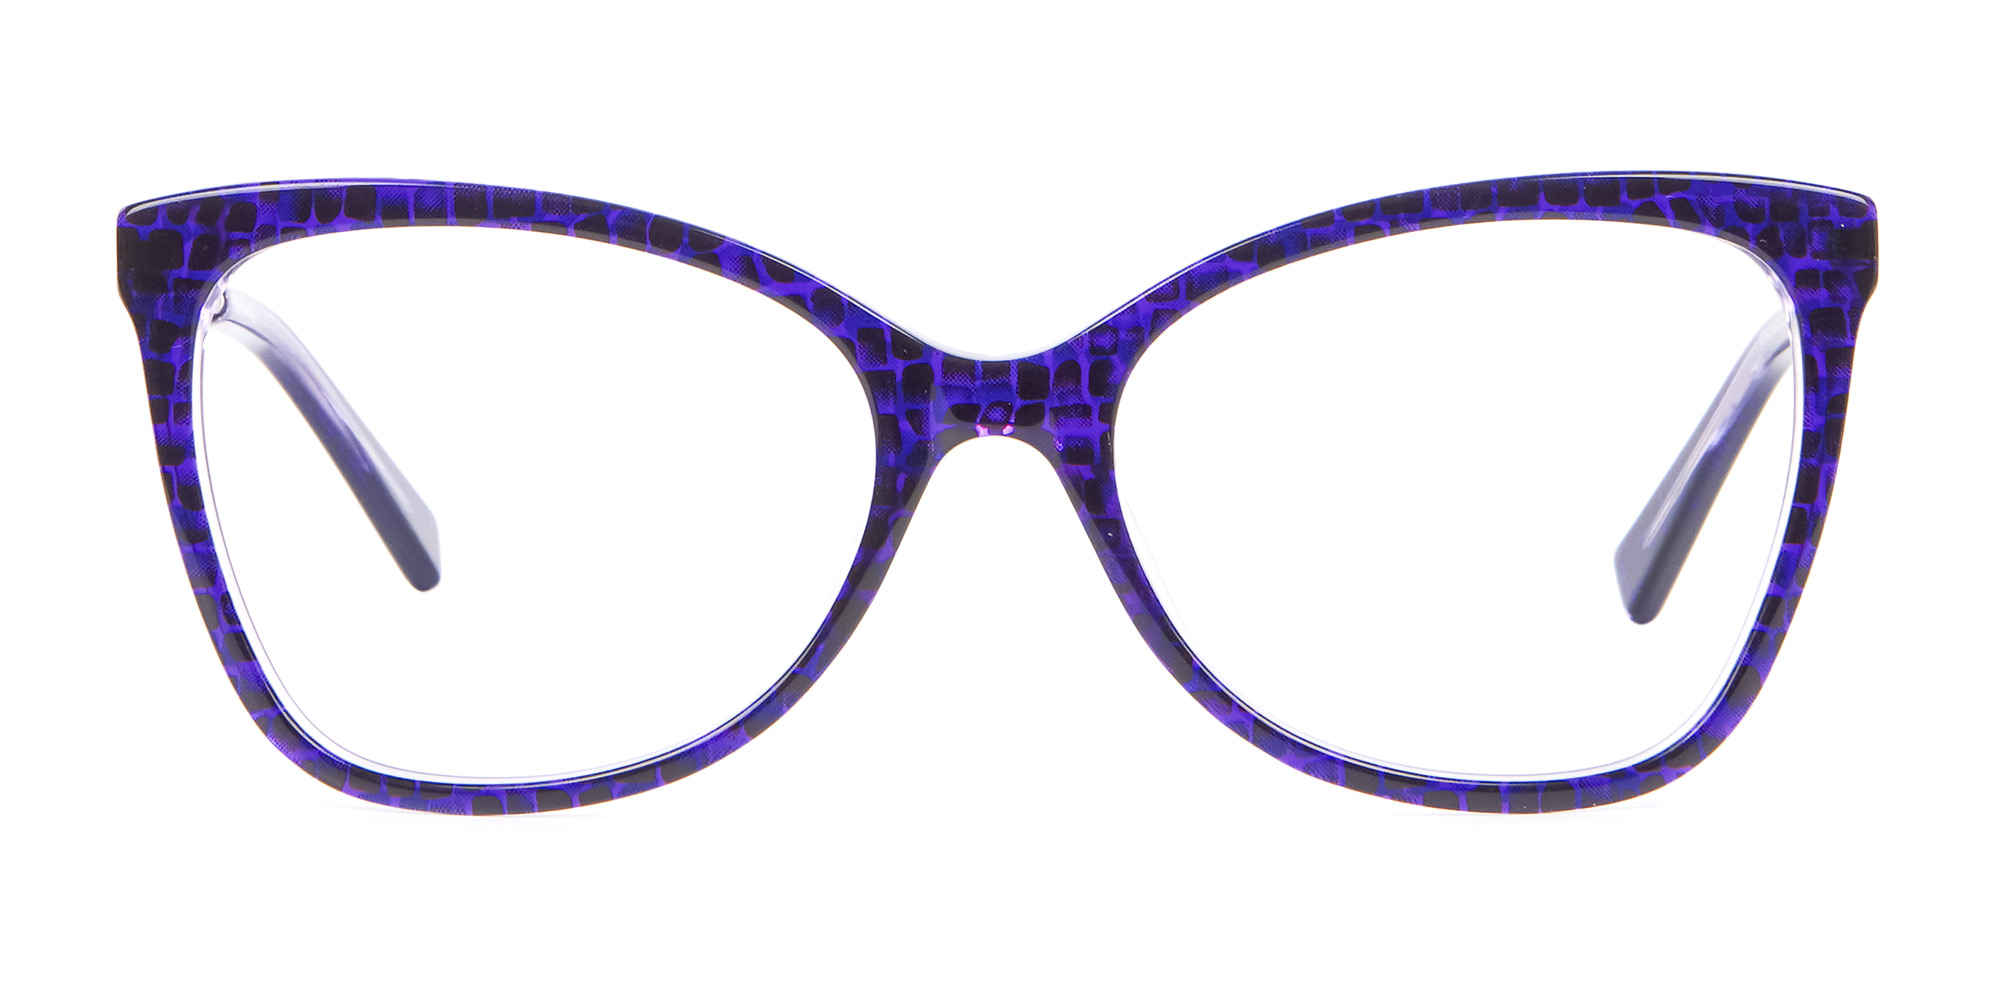 Purple Butterfly Eyeglasses Frame with Patterns